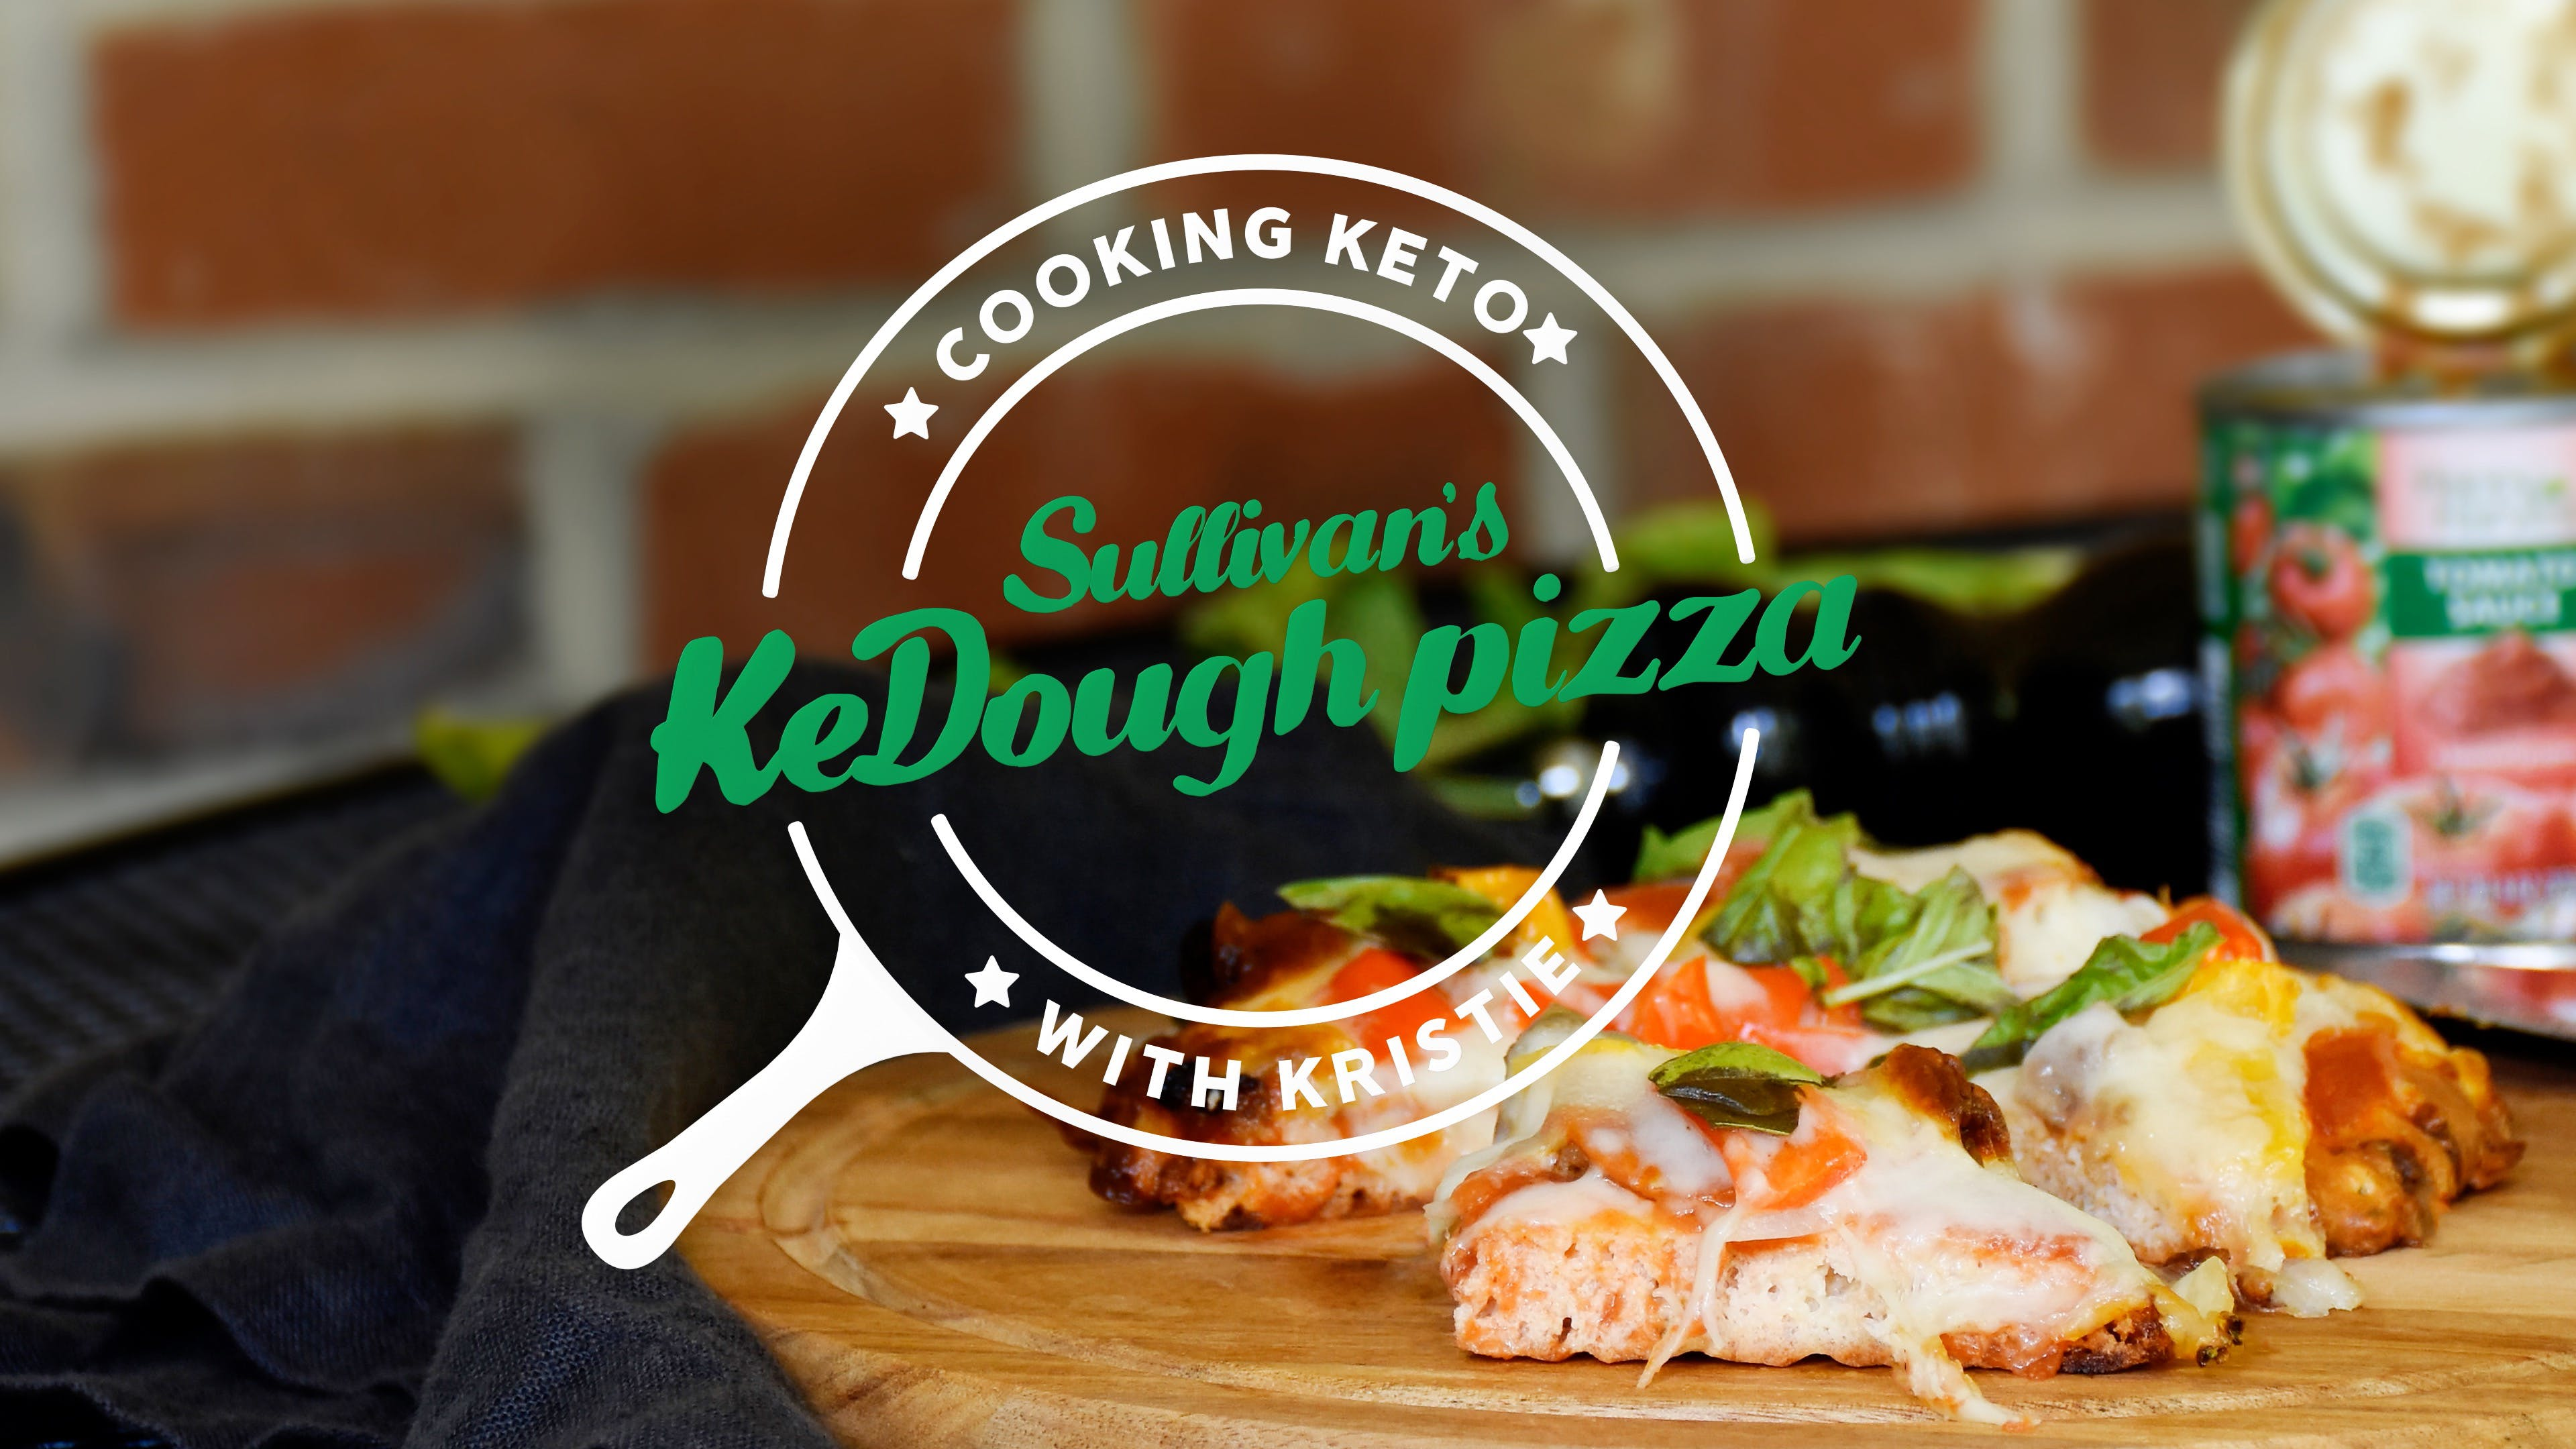 Free video: Cooking KeDough pizza with Kristie